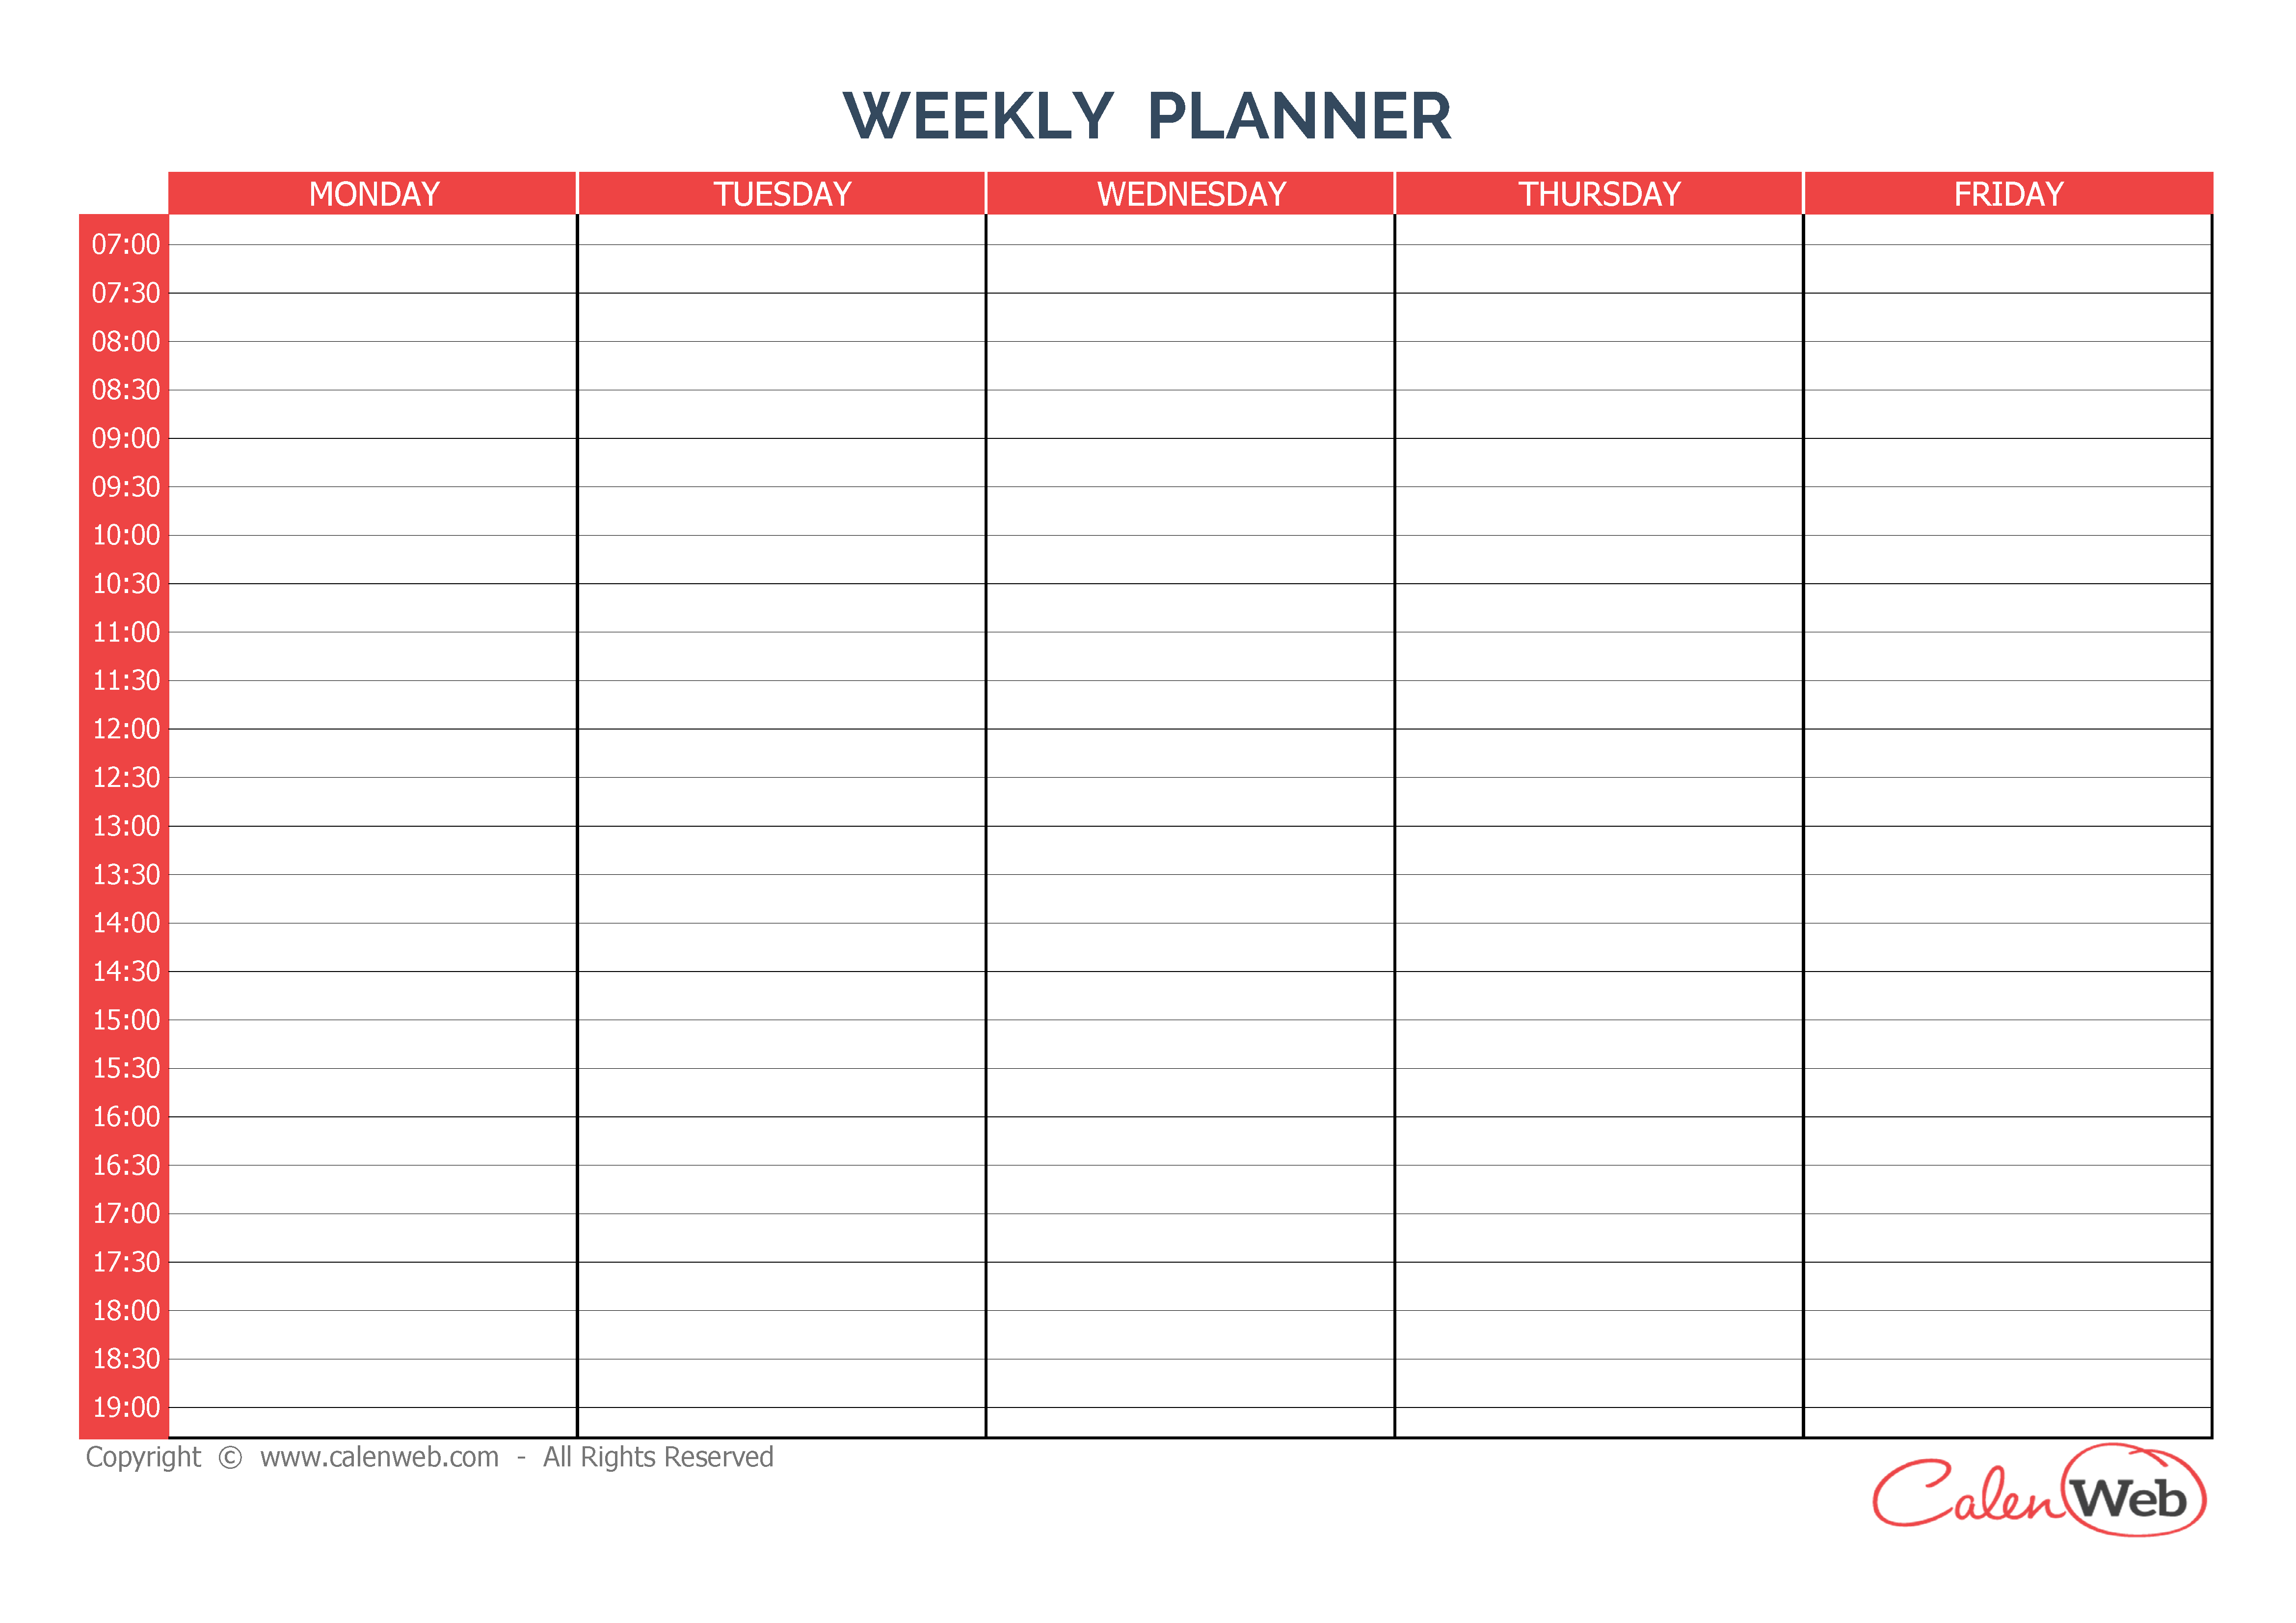 Weekly Planner 5 Days A Week Of 5 Days  Calenweb within Free Printable 5 Day Calendar